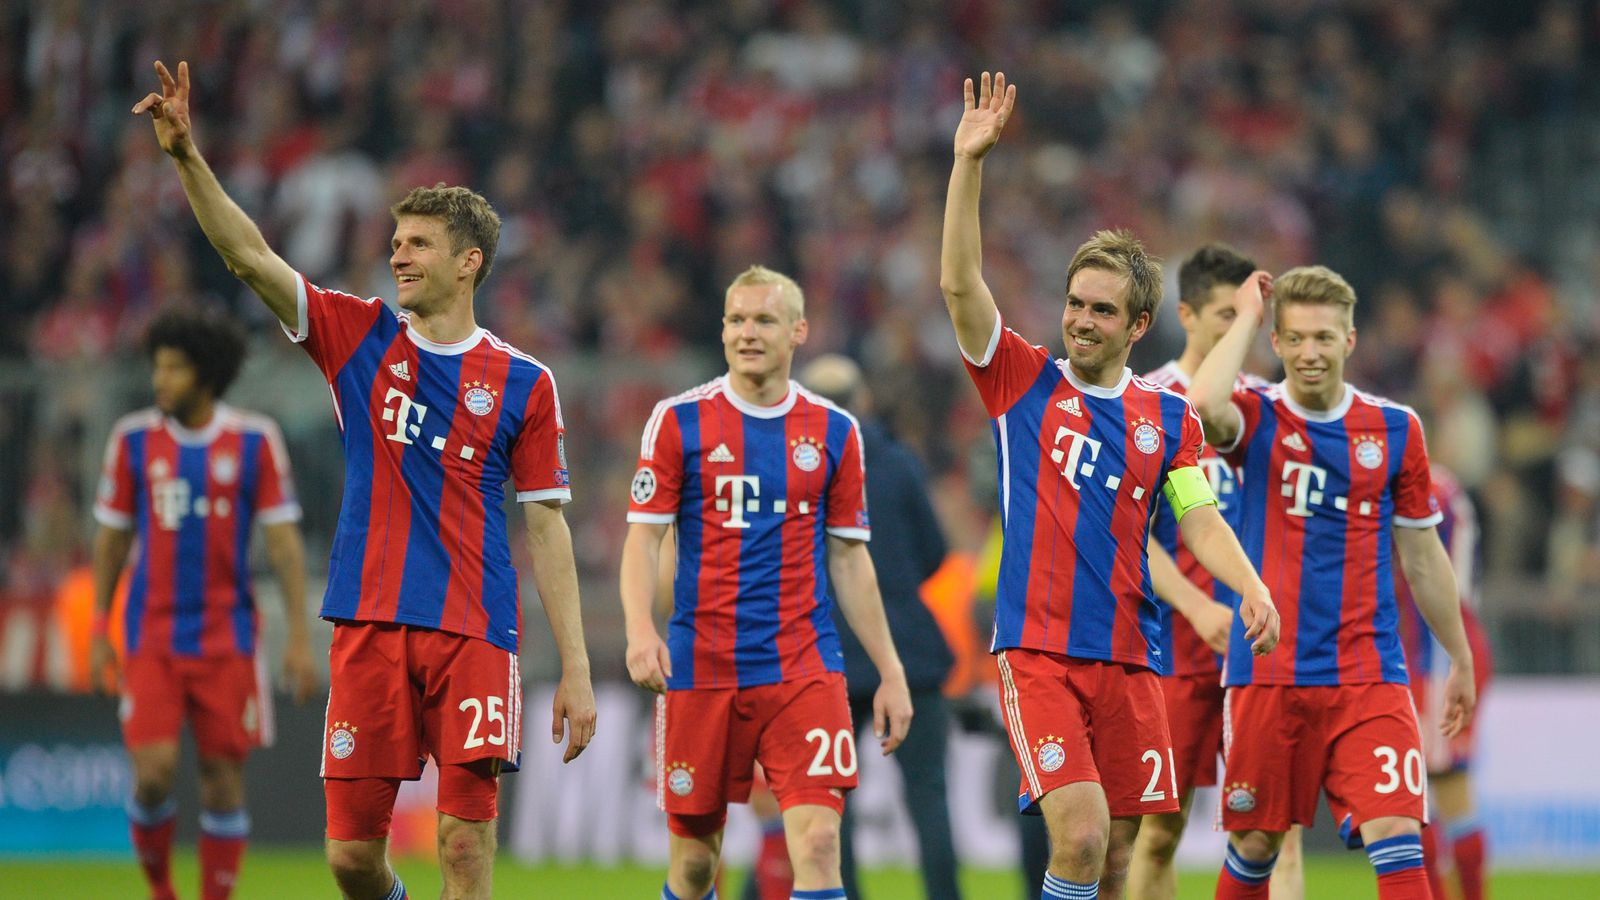 Bayern vs. Hertha: Post-match awards and ratings